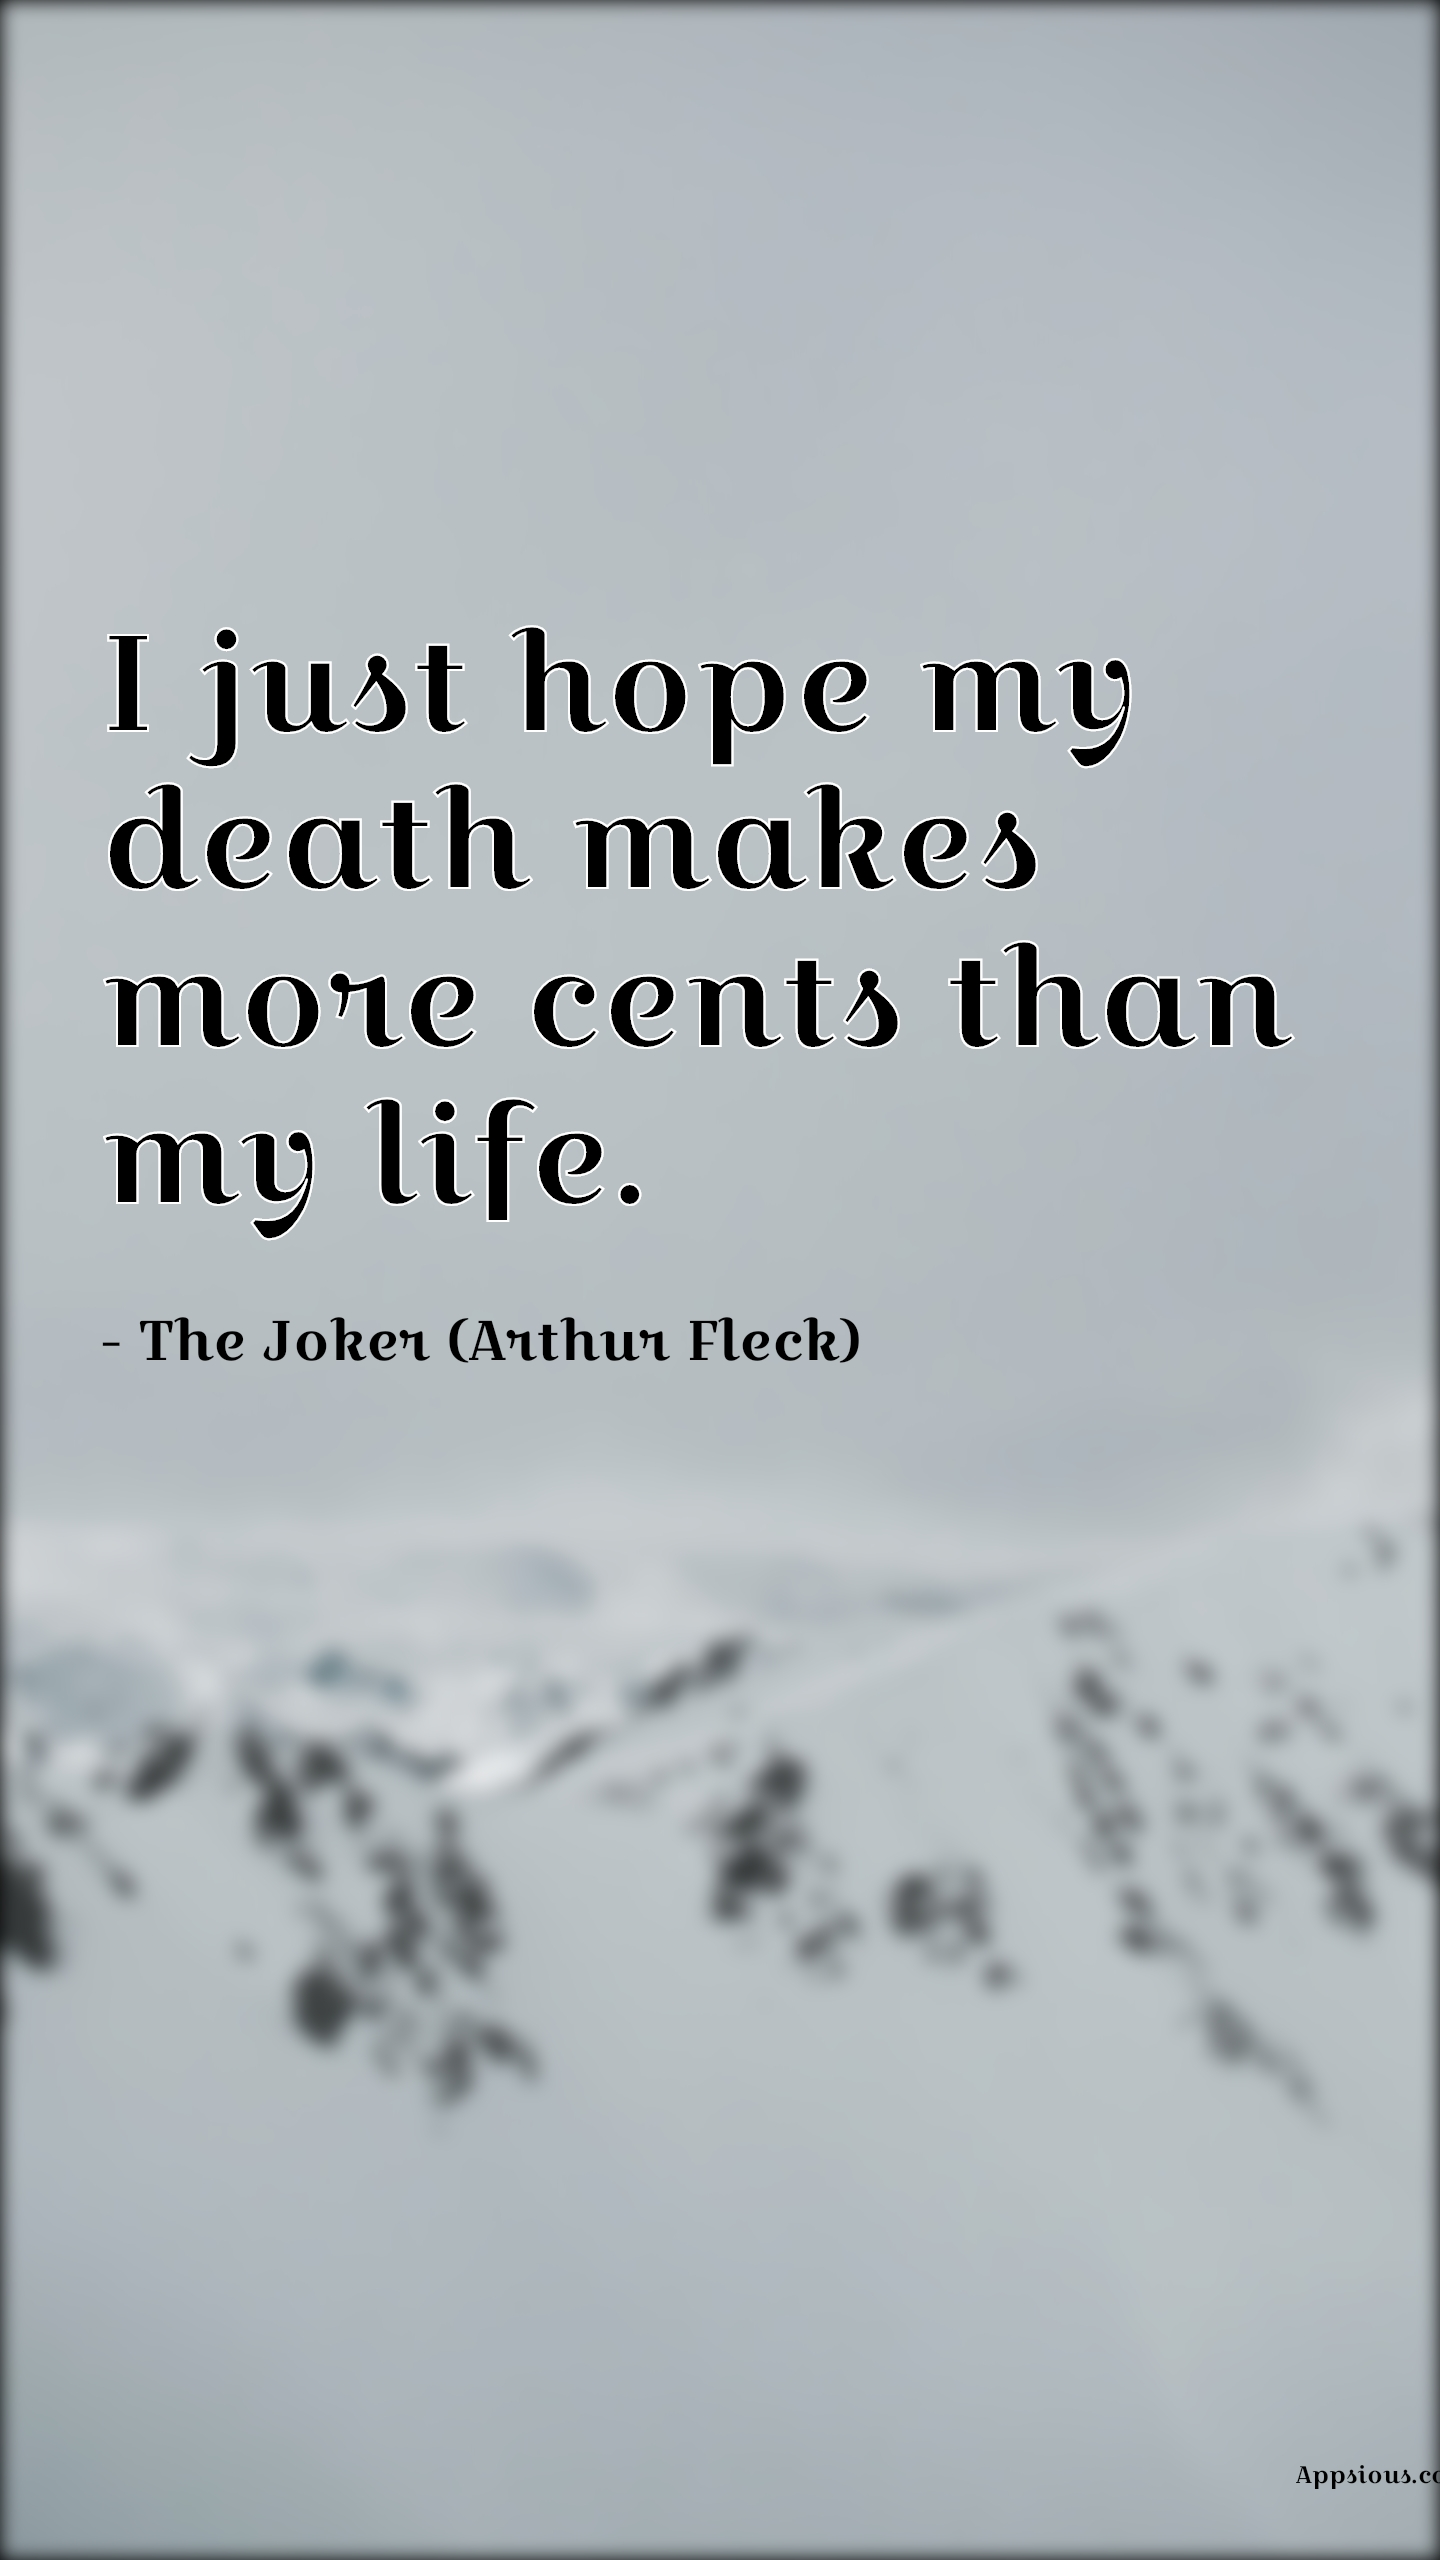 I just hope my death makes more cents than my life.